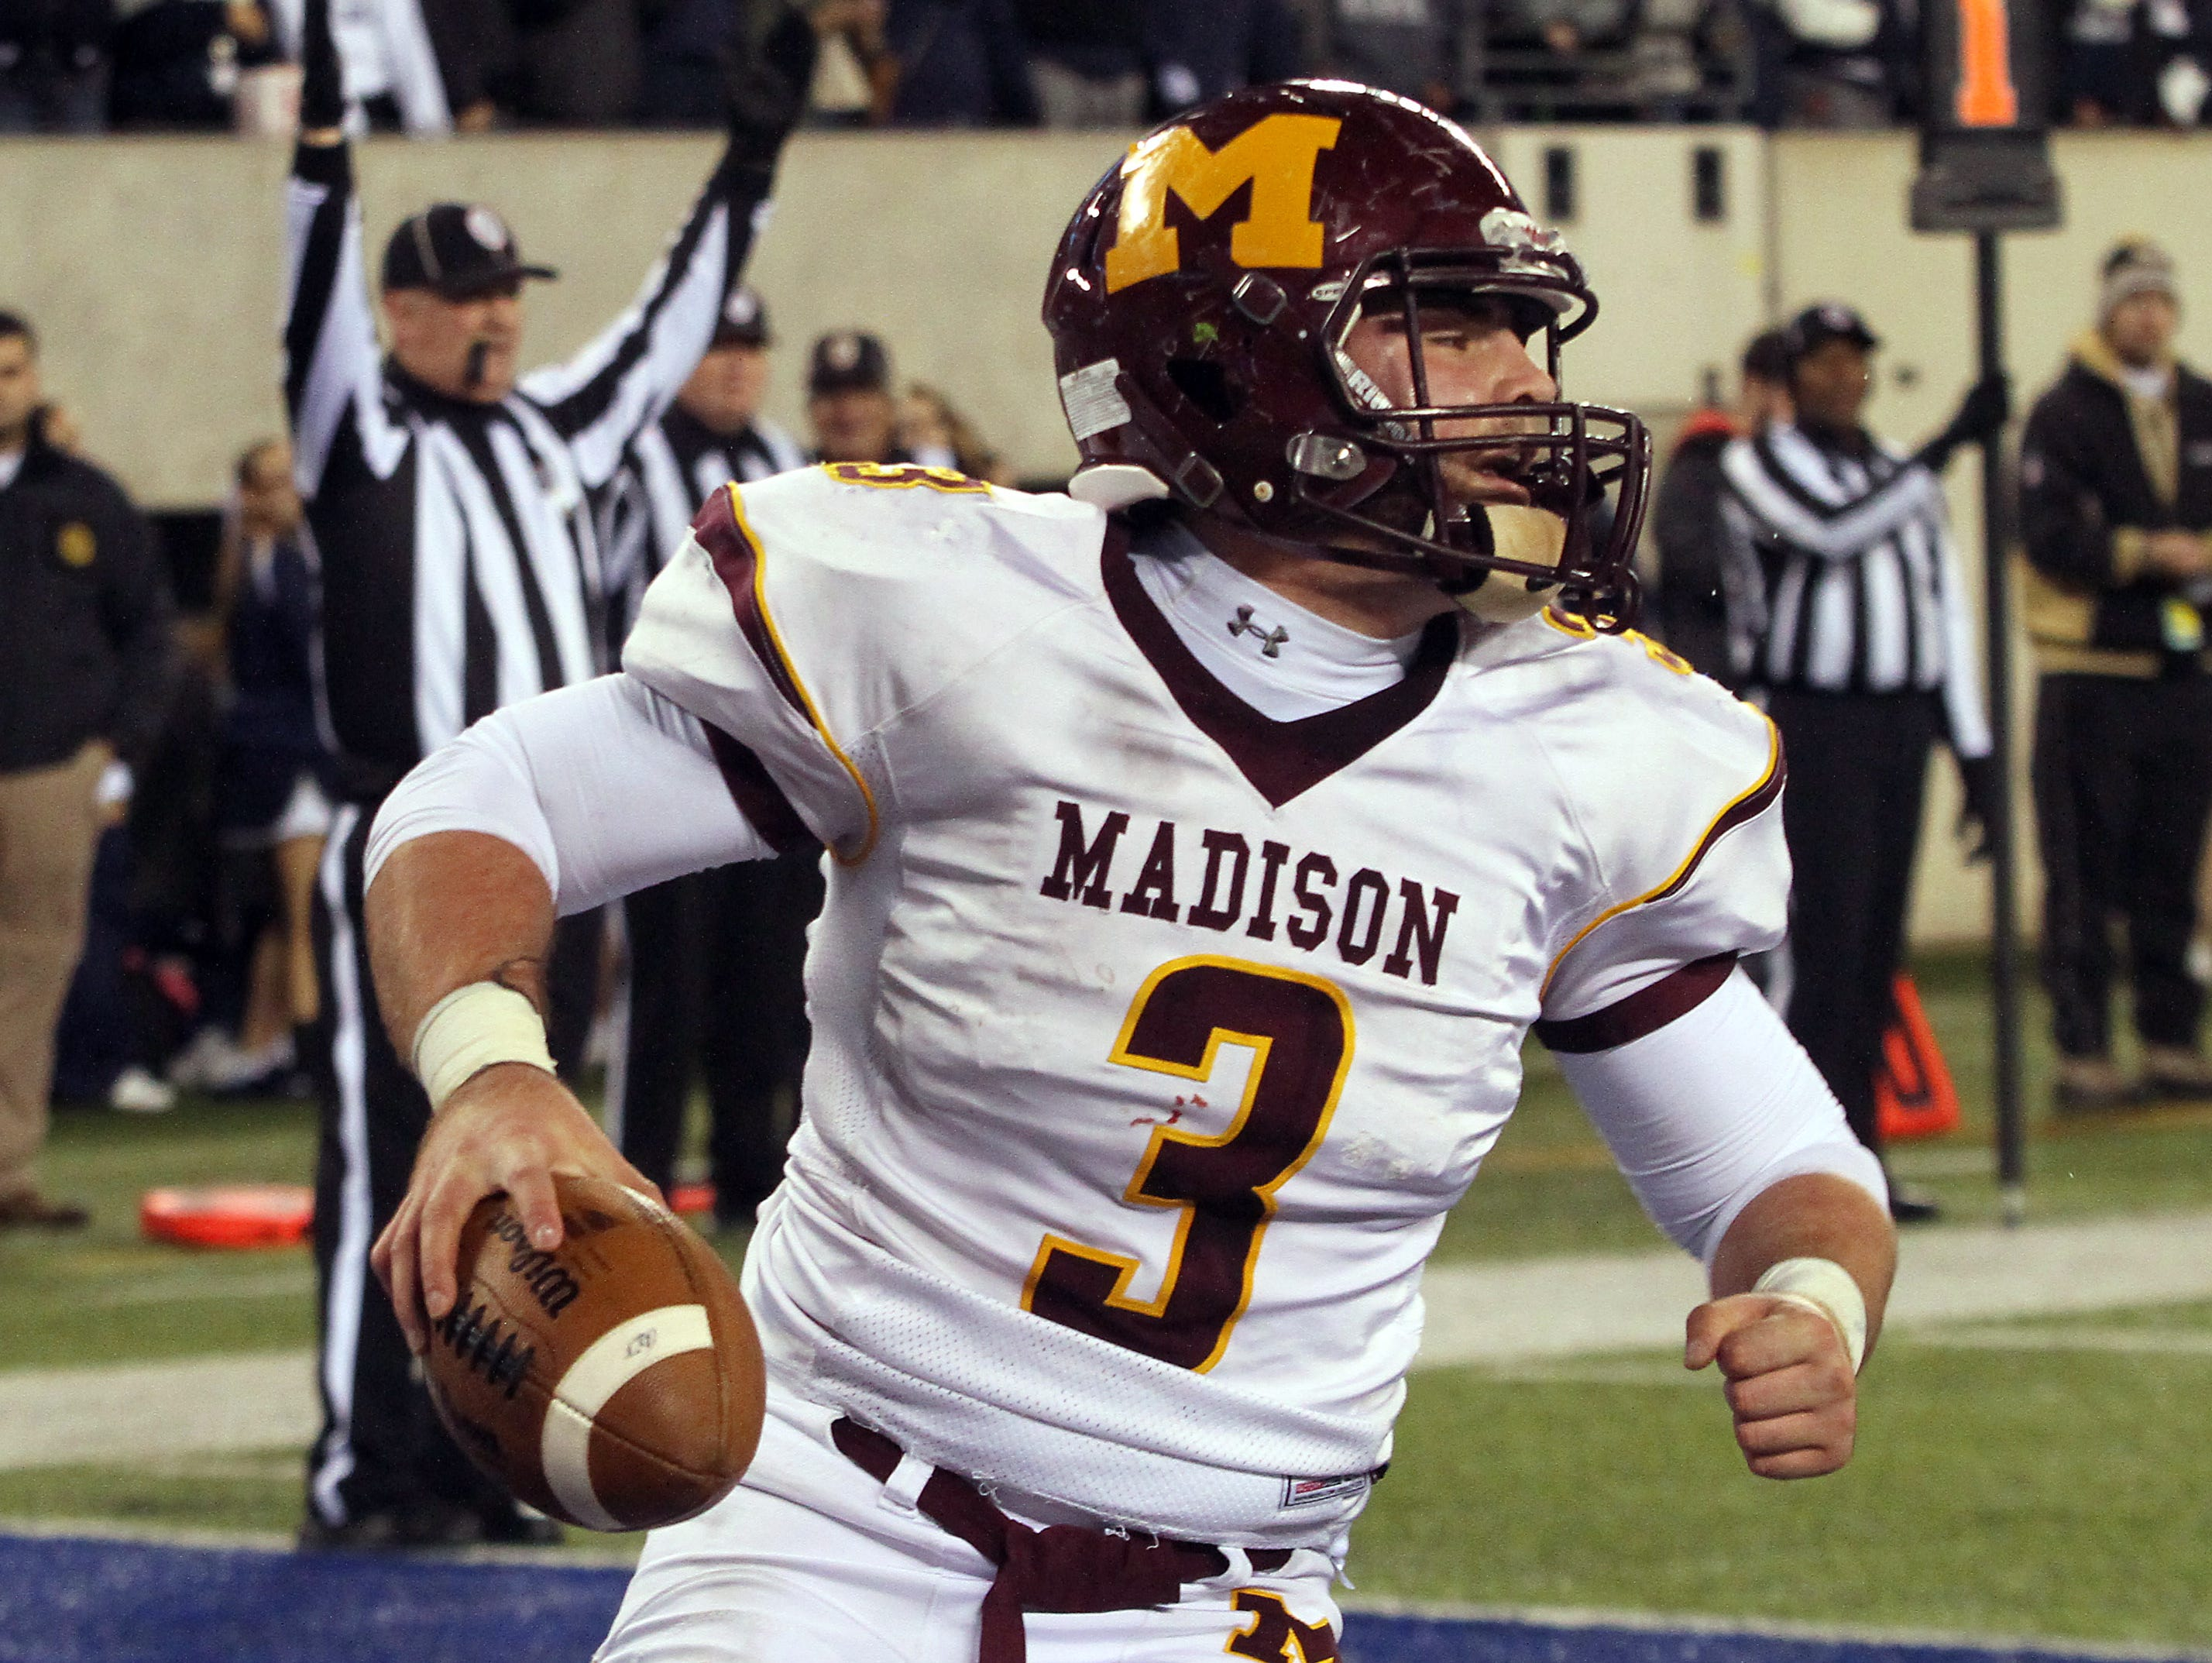 Madison's Dom Luppino celebrates after scoring at the end of the first half vs. Rutherford in the North 2, Group 2 NJSIAA football Championship at MetLife Stadium. December 3, 2015, East Rutherford, NJ.